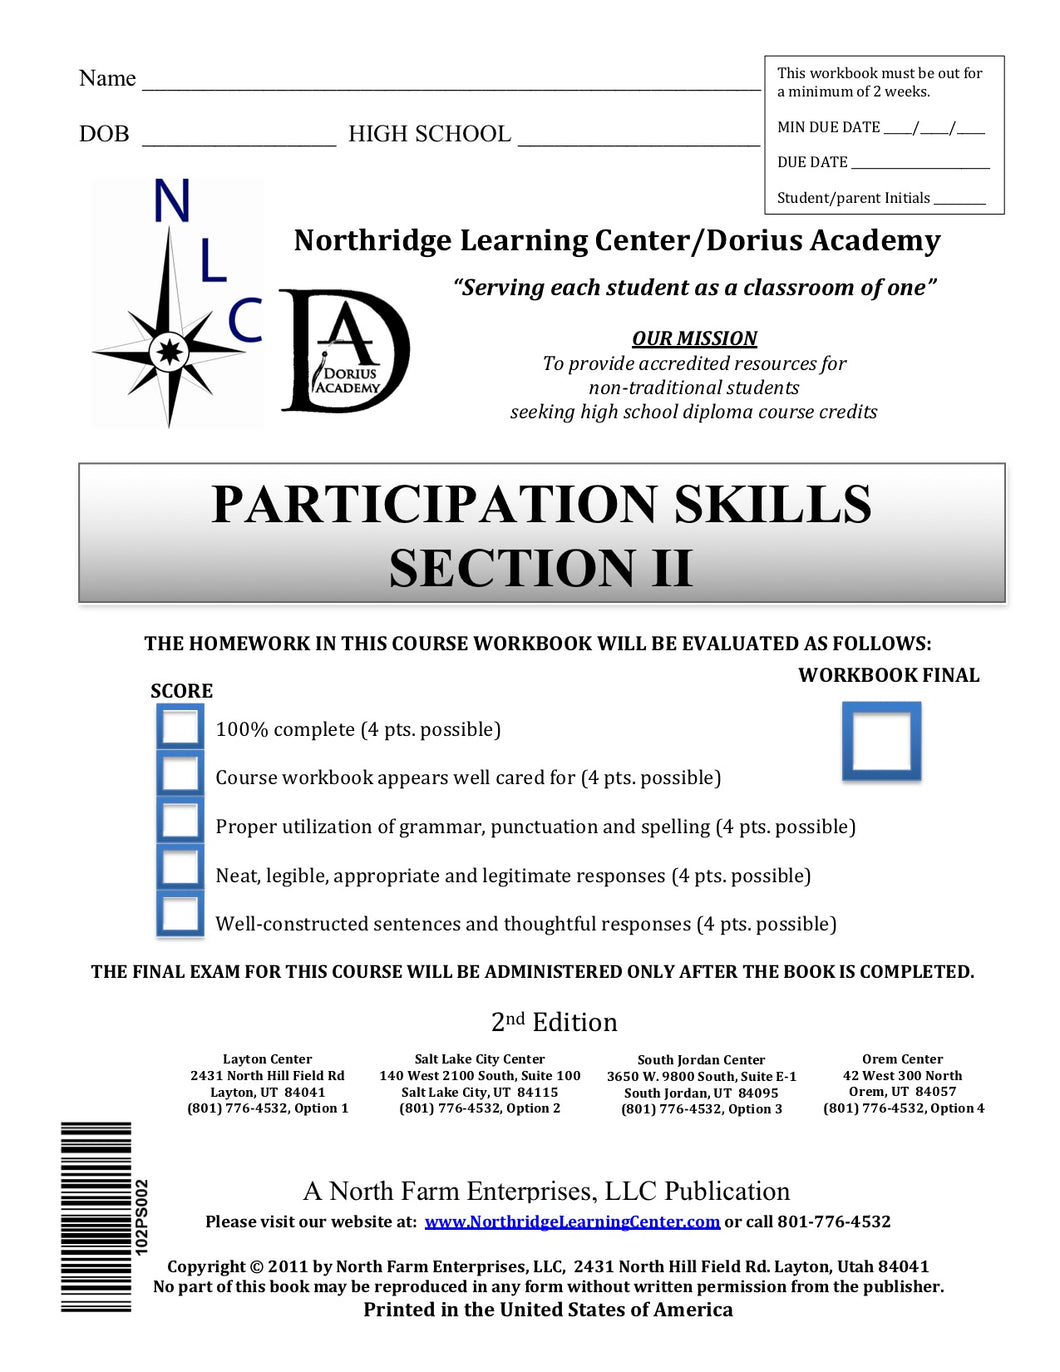 Participation Skills, Section II